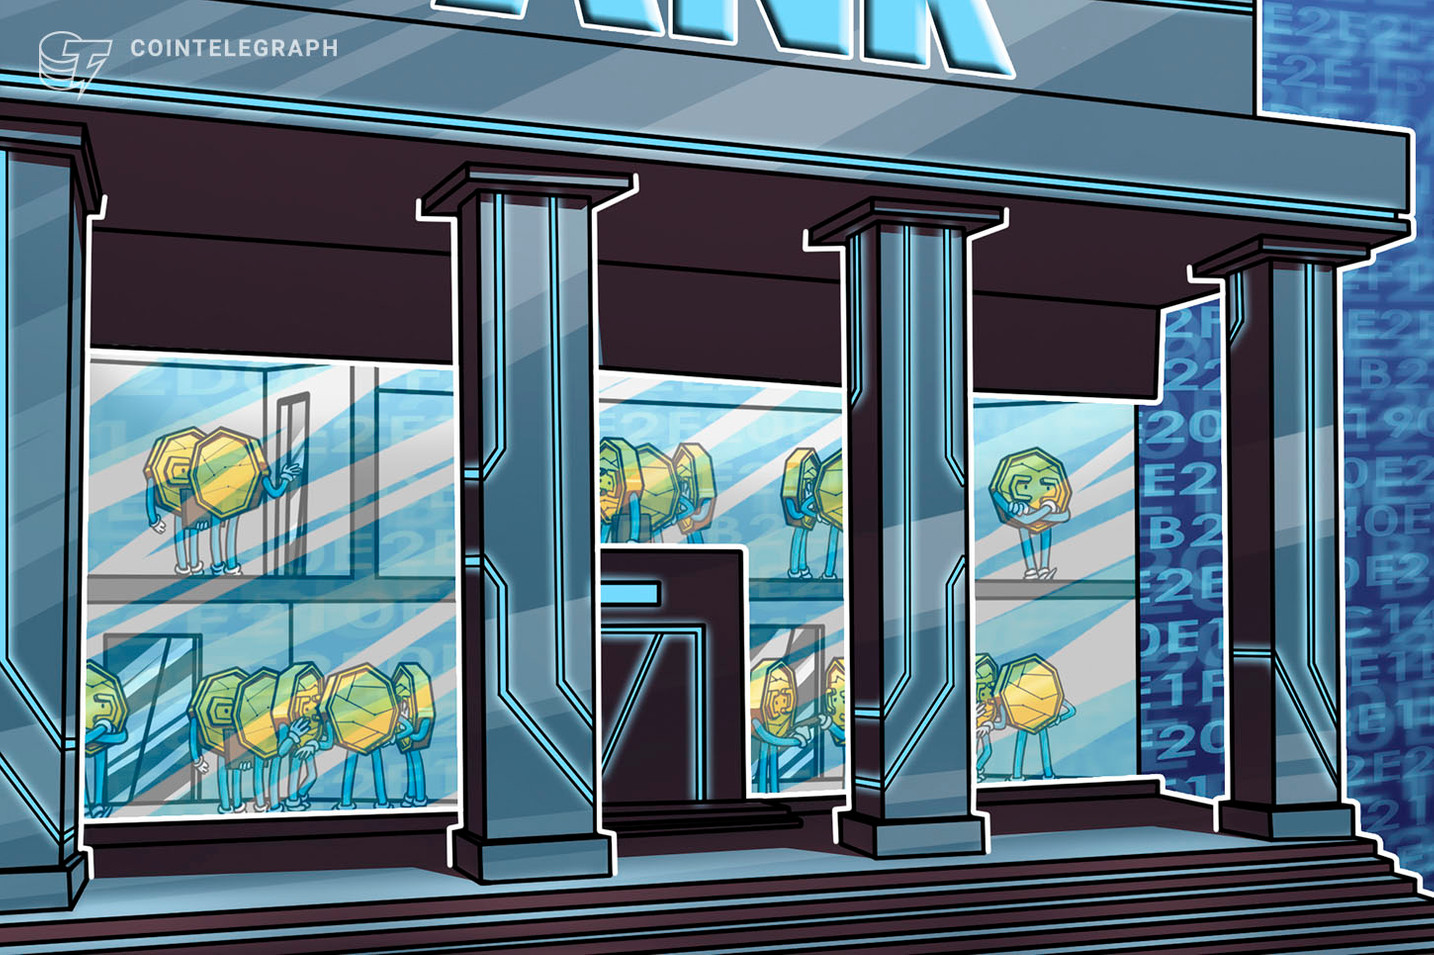 US regulators are exploring policy for banks to handle crypto, says FDIC chair